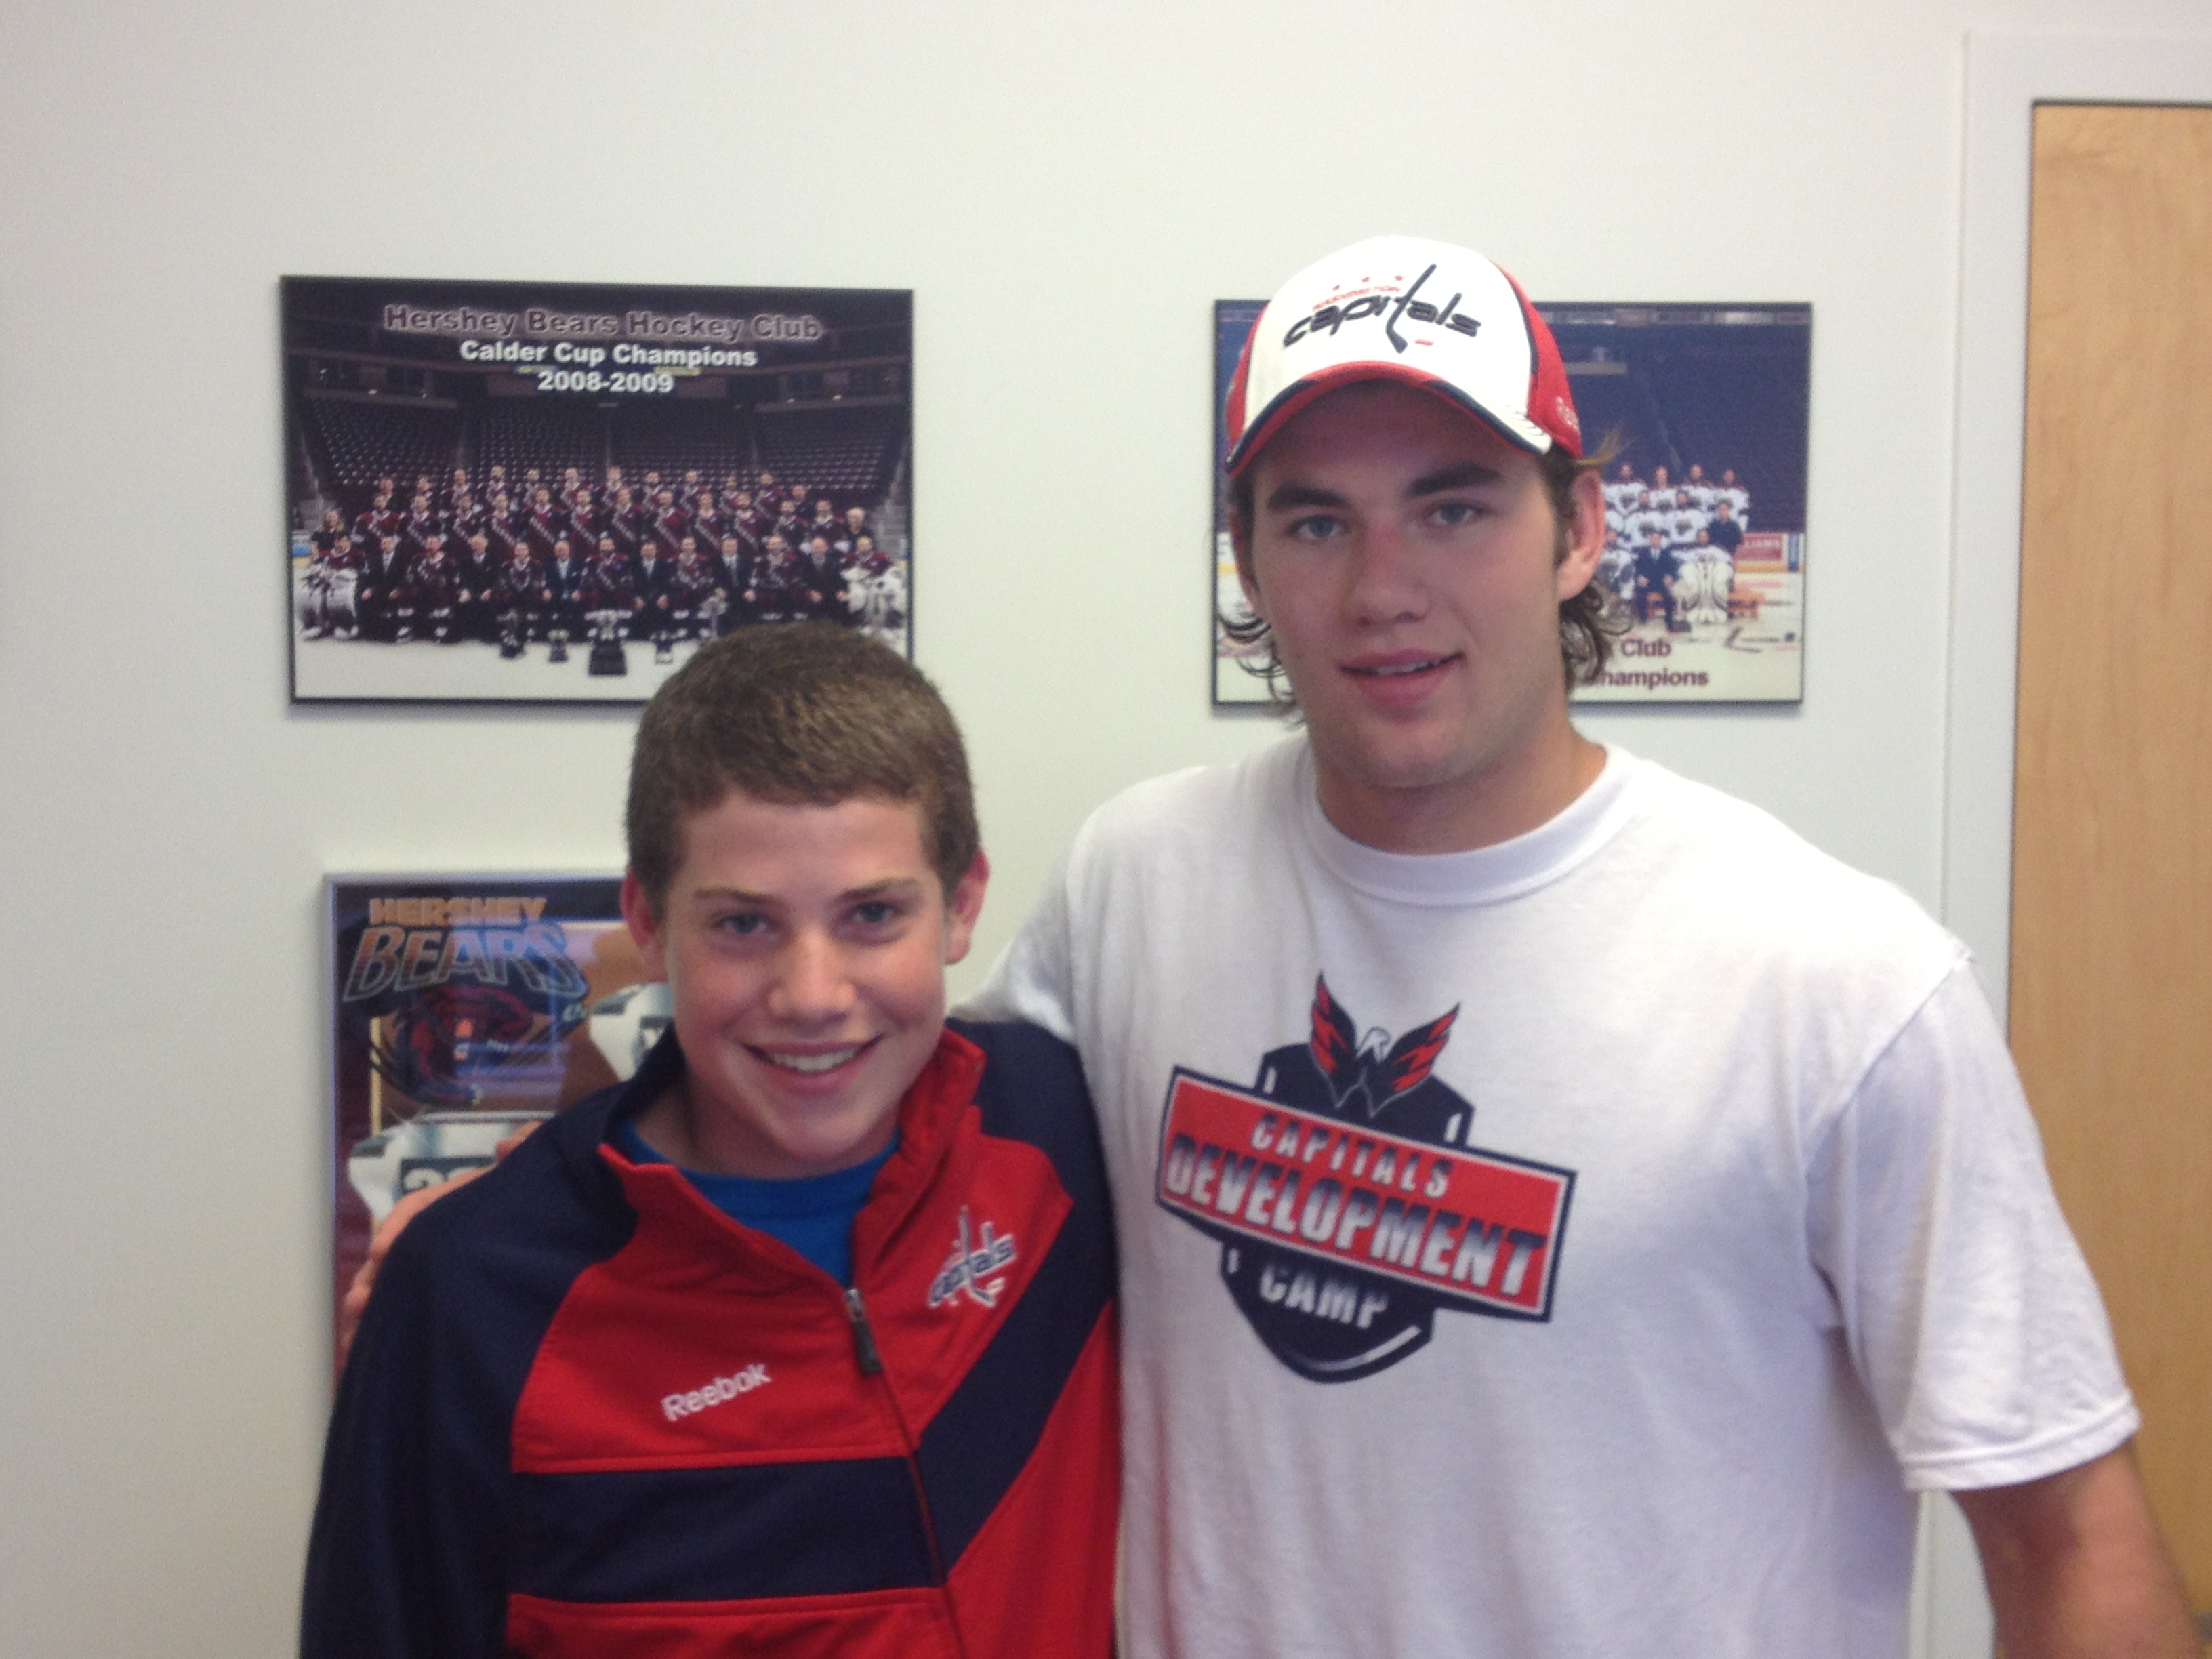 Tom Wilson with Jack Walton